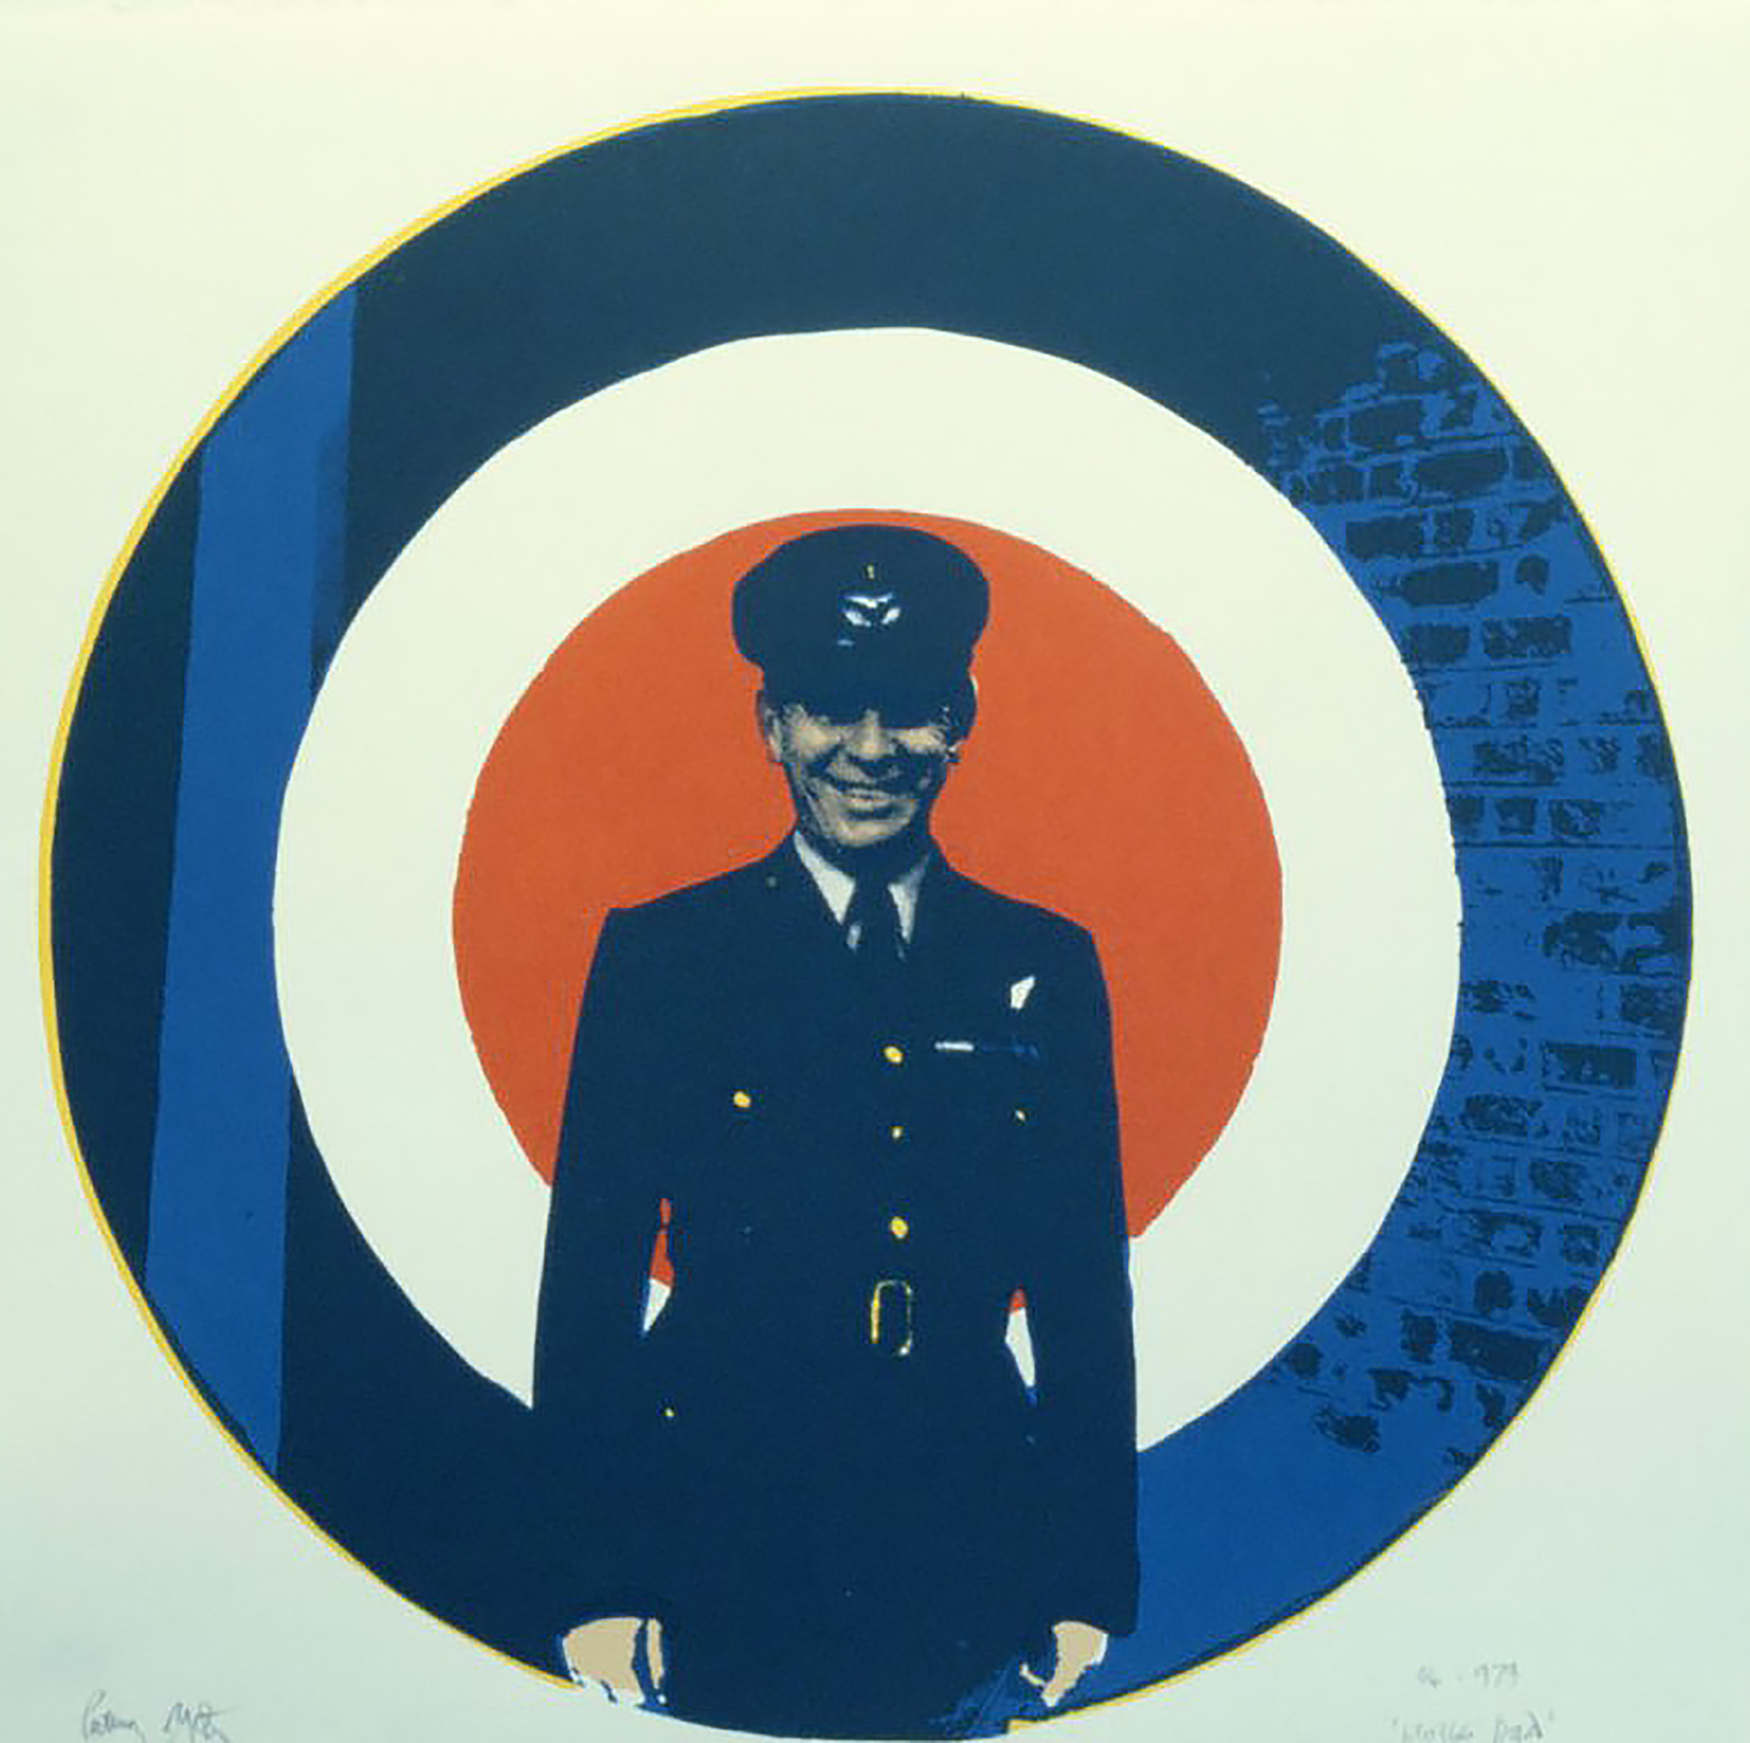 Screenprint, edition of 10, 1978